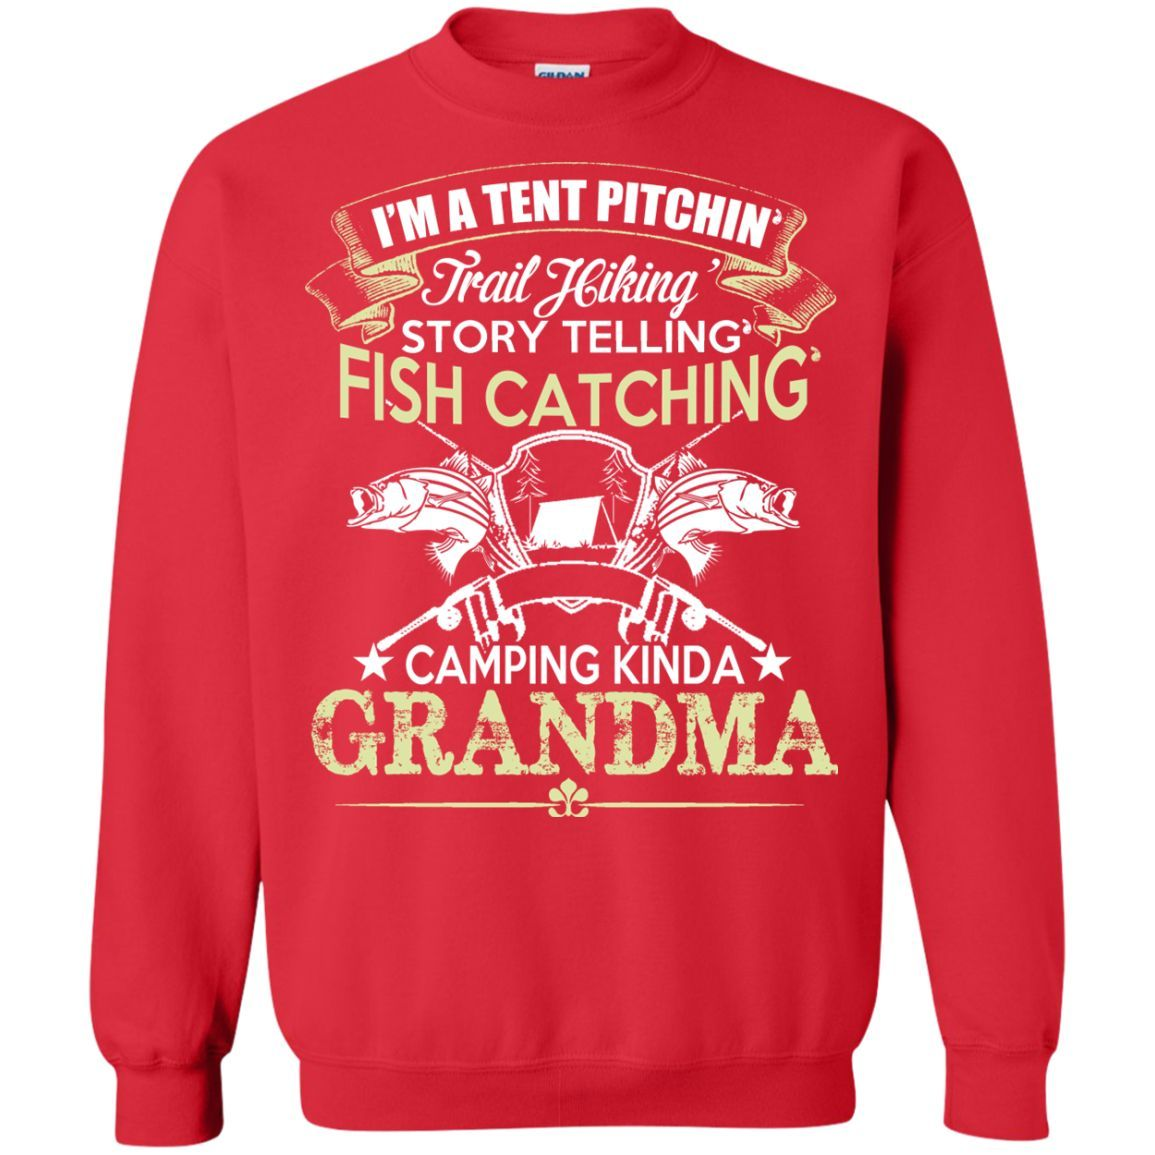 Tent Pitching, Fish Catching, Camping Kinda Grandma Sweatshirt